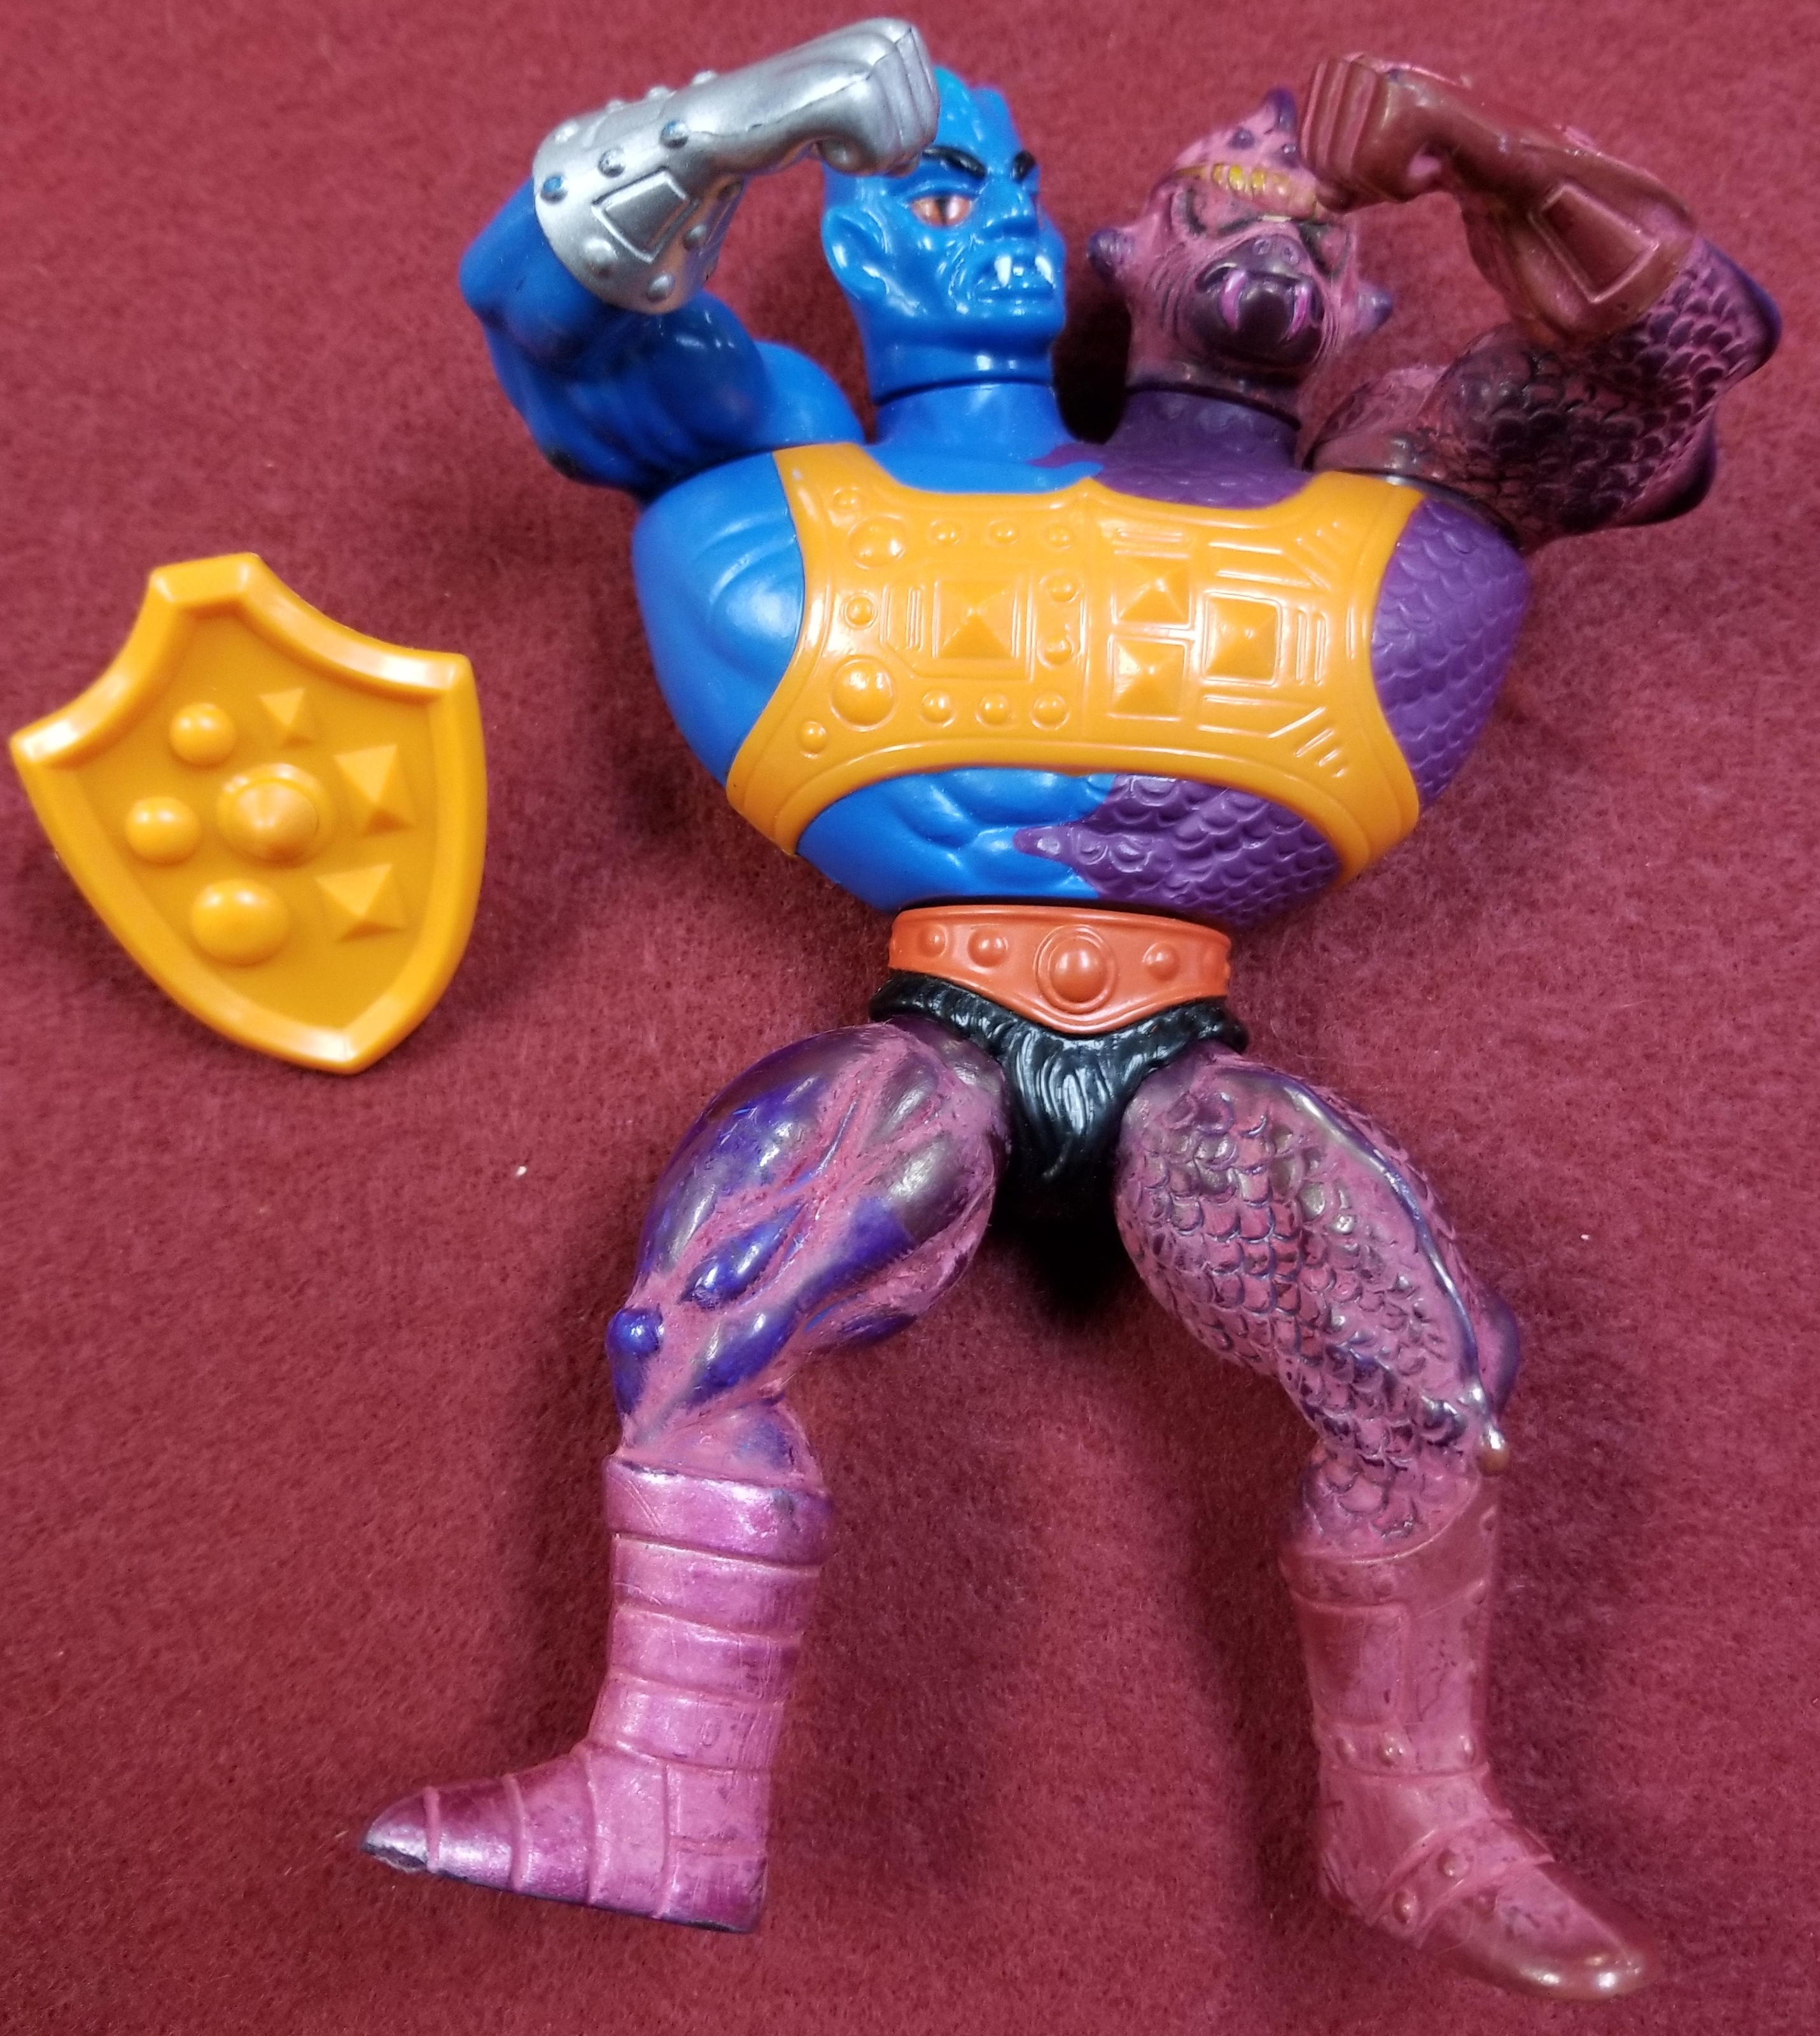 MASTERS OF THE UNIVERSE CLASSIC FIGURES - TWO-BAD